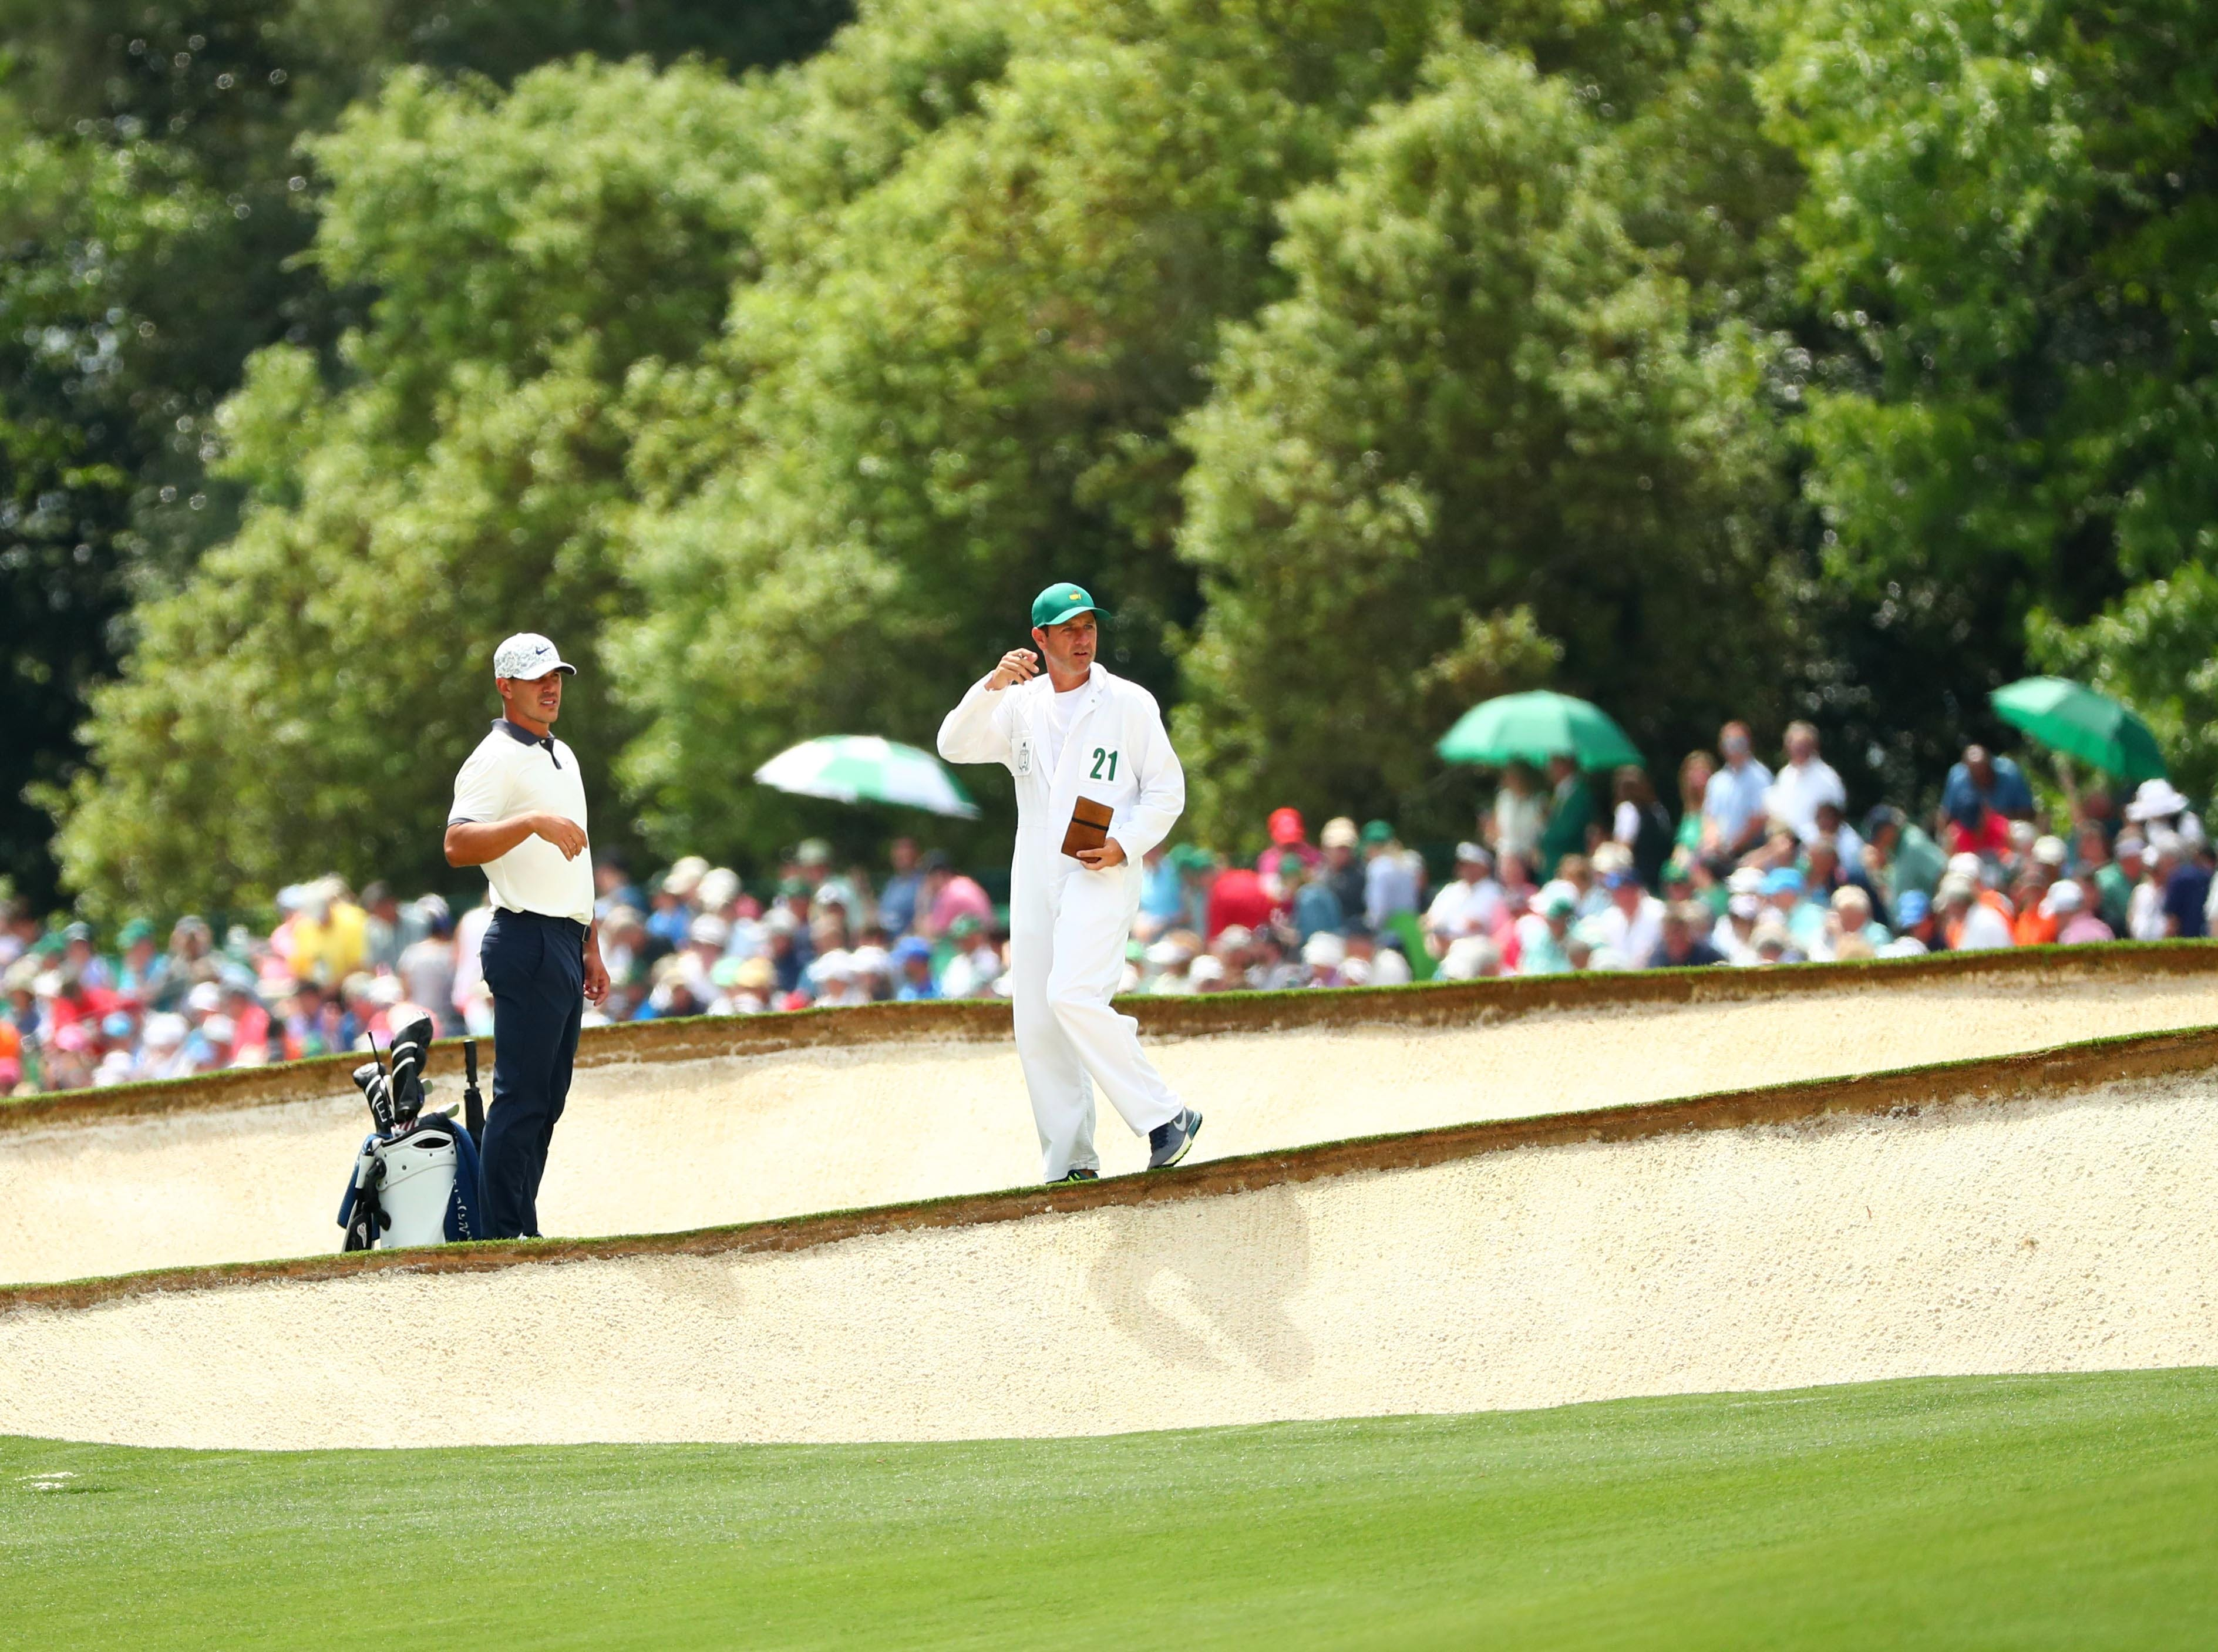 Apr 12, 2019; Augusta, GA, USA; Brooks Koepka and caddie Ricky Elliot in the bunkers on the 5th hole during the second round of The Masters golf tournament at Augusta National Golf Club. Mandatory Credit: Rob Schumacher-USA TODAY Sports